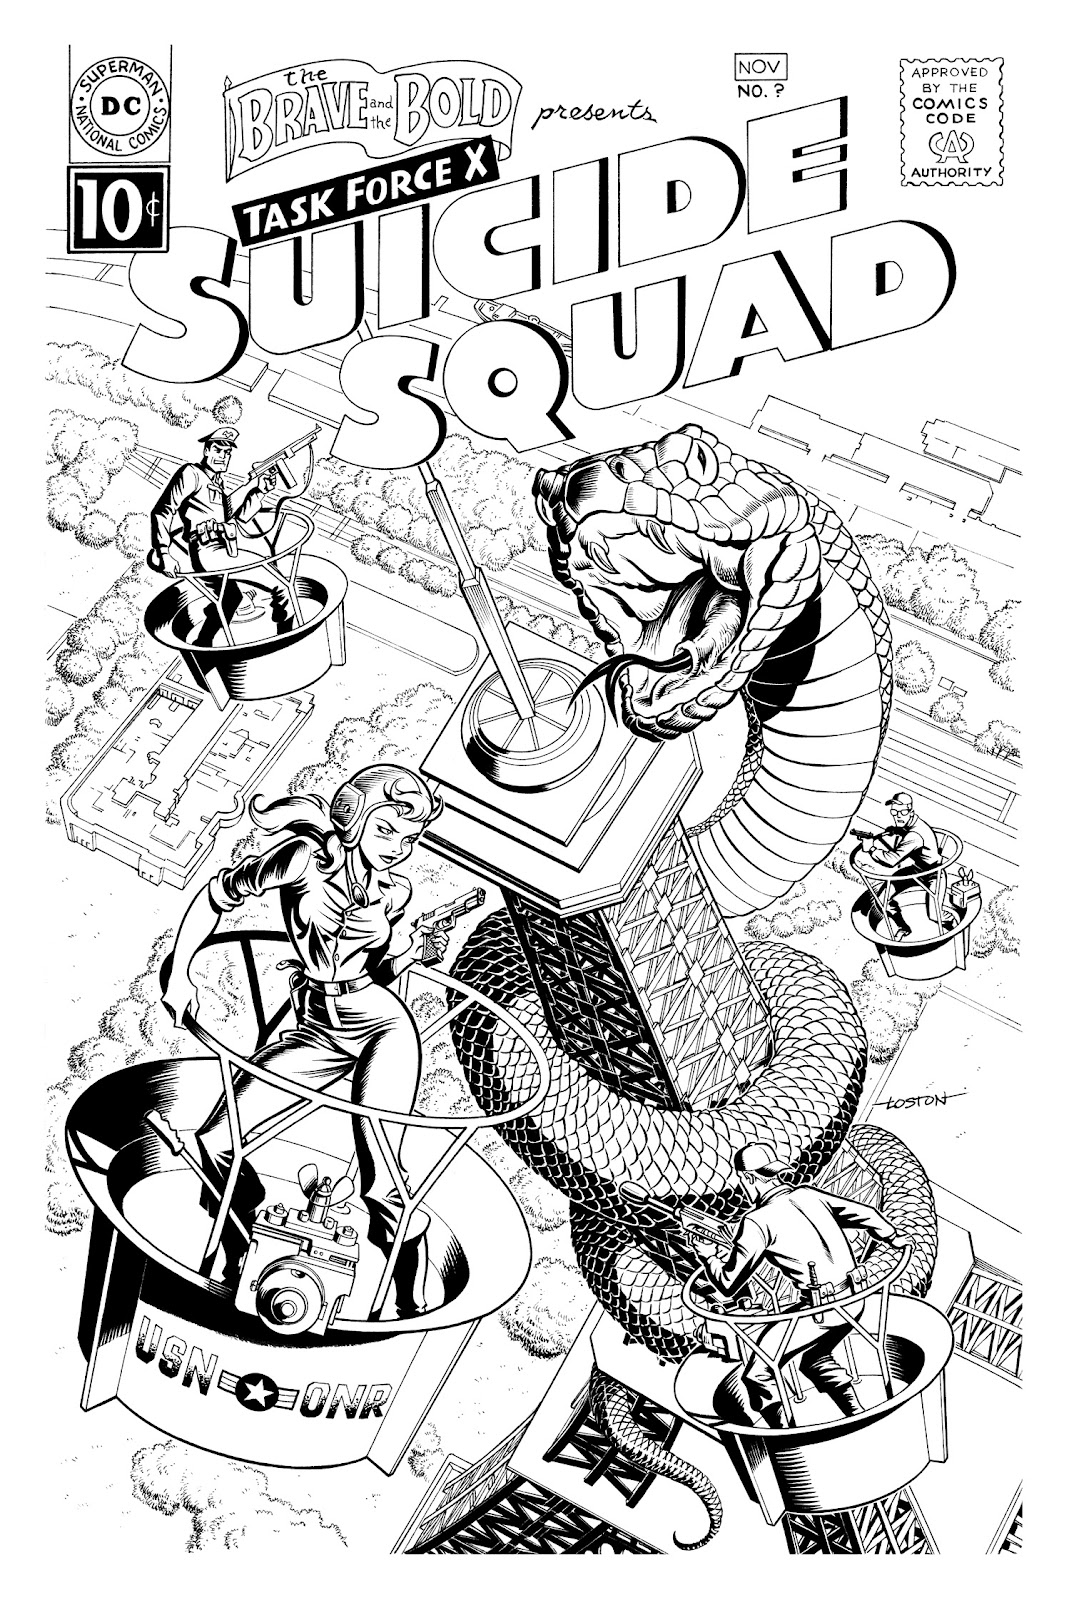 Suicide squad coloring pages best coloring pages kids, i love you coloring pages printable